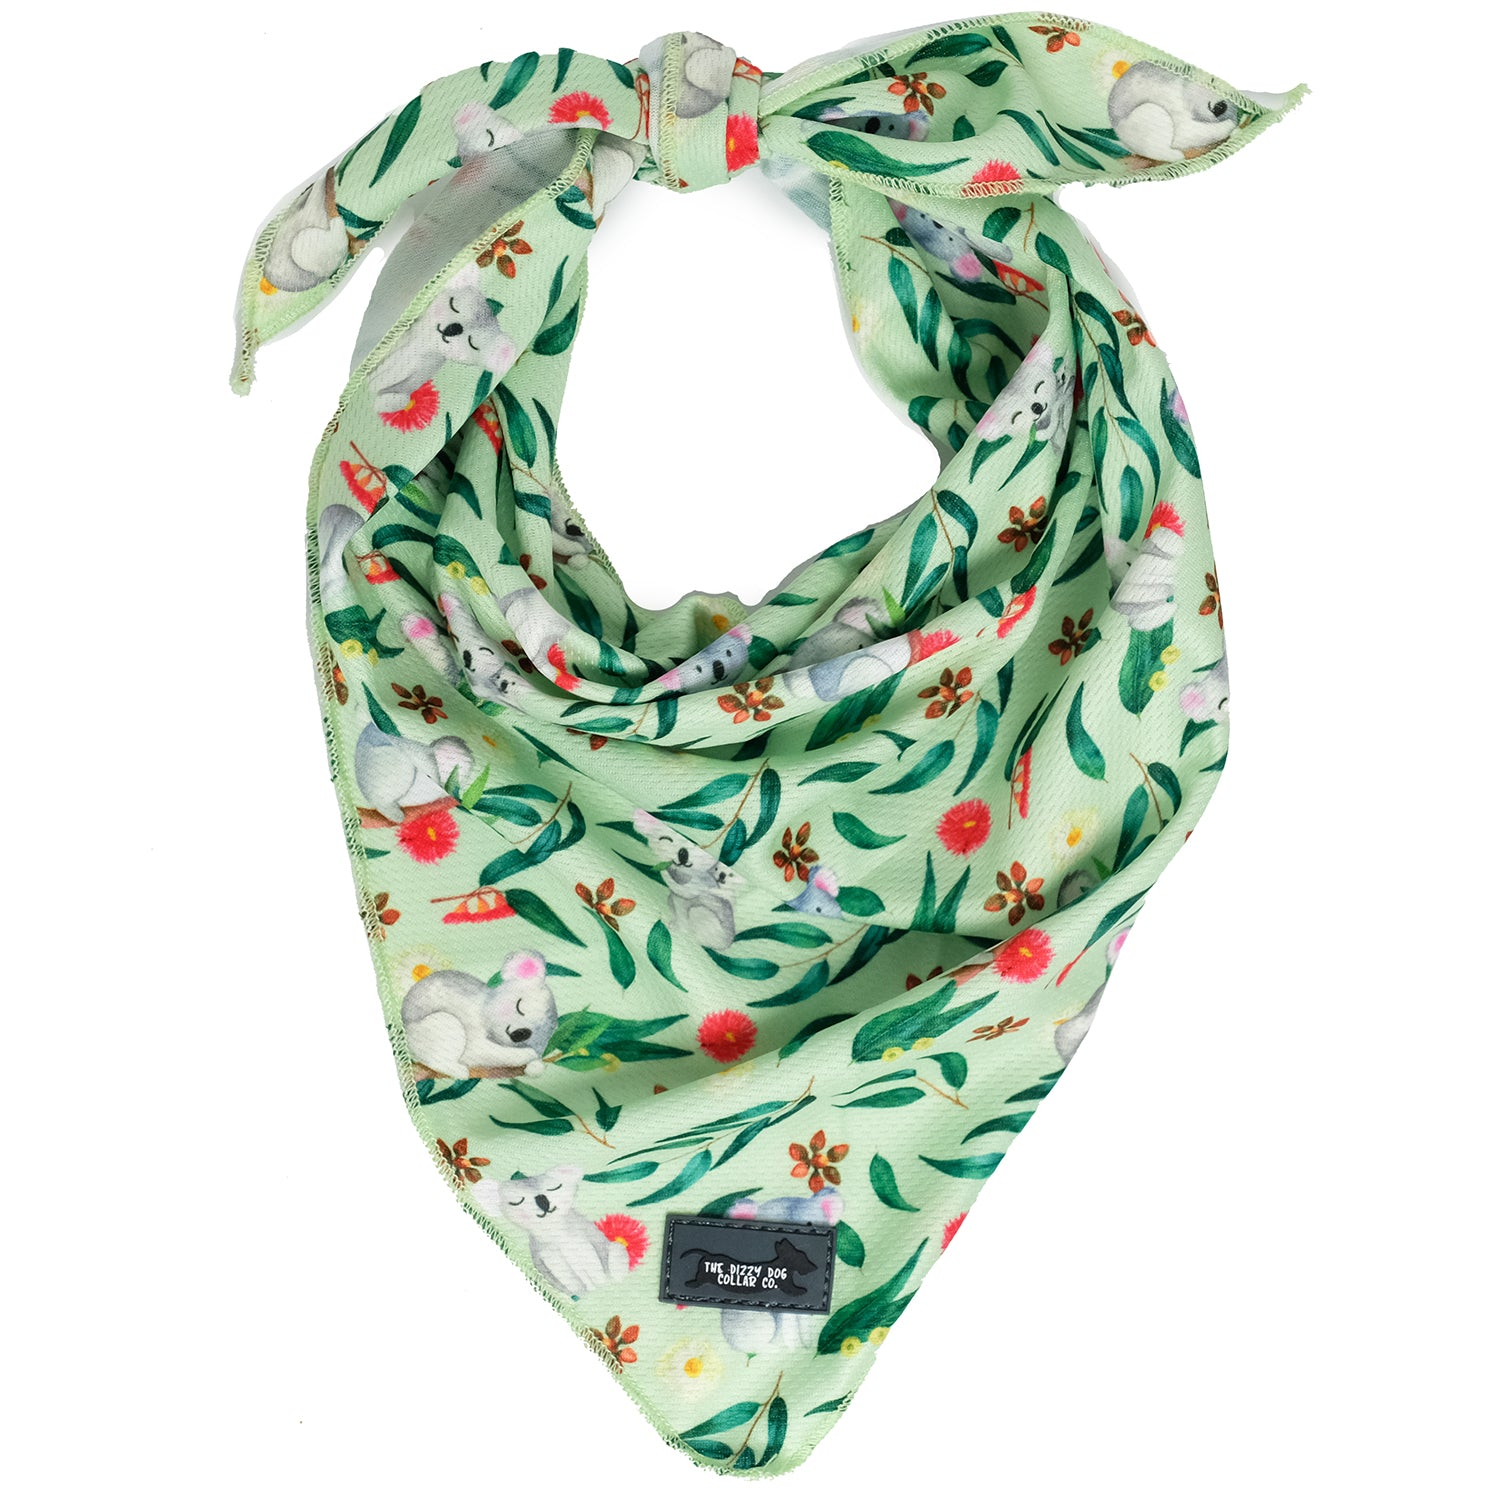 Show your pride of our Australian wildlife with this cute dog bandana featuring koalas and eucalyptus leaves. Designed by Dizzy Dog Collars Australia, this bandana is perfect for big and little dogs.